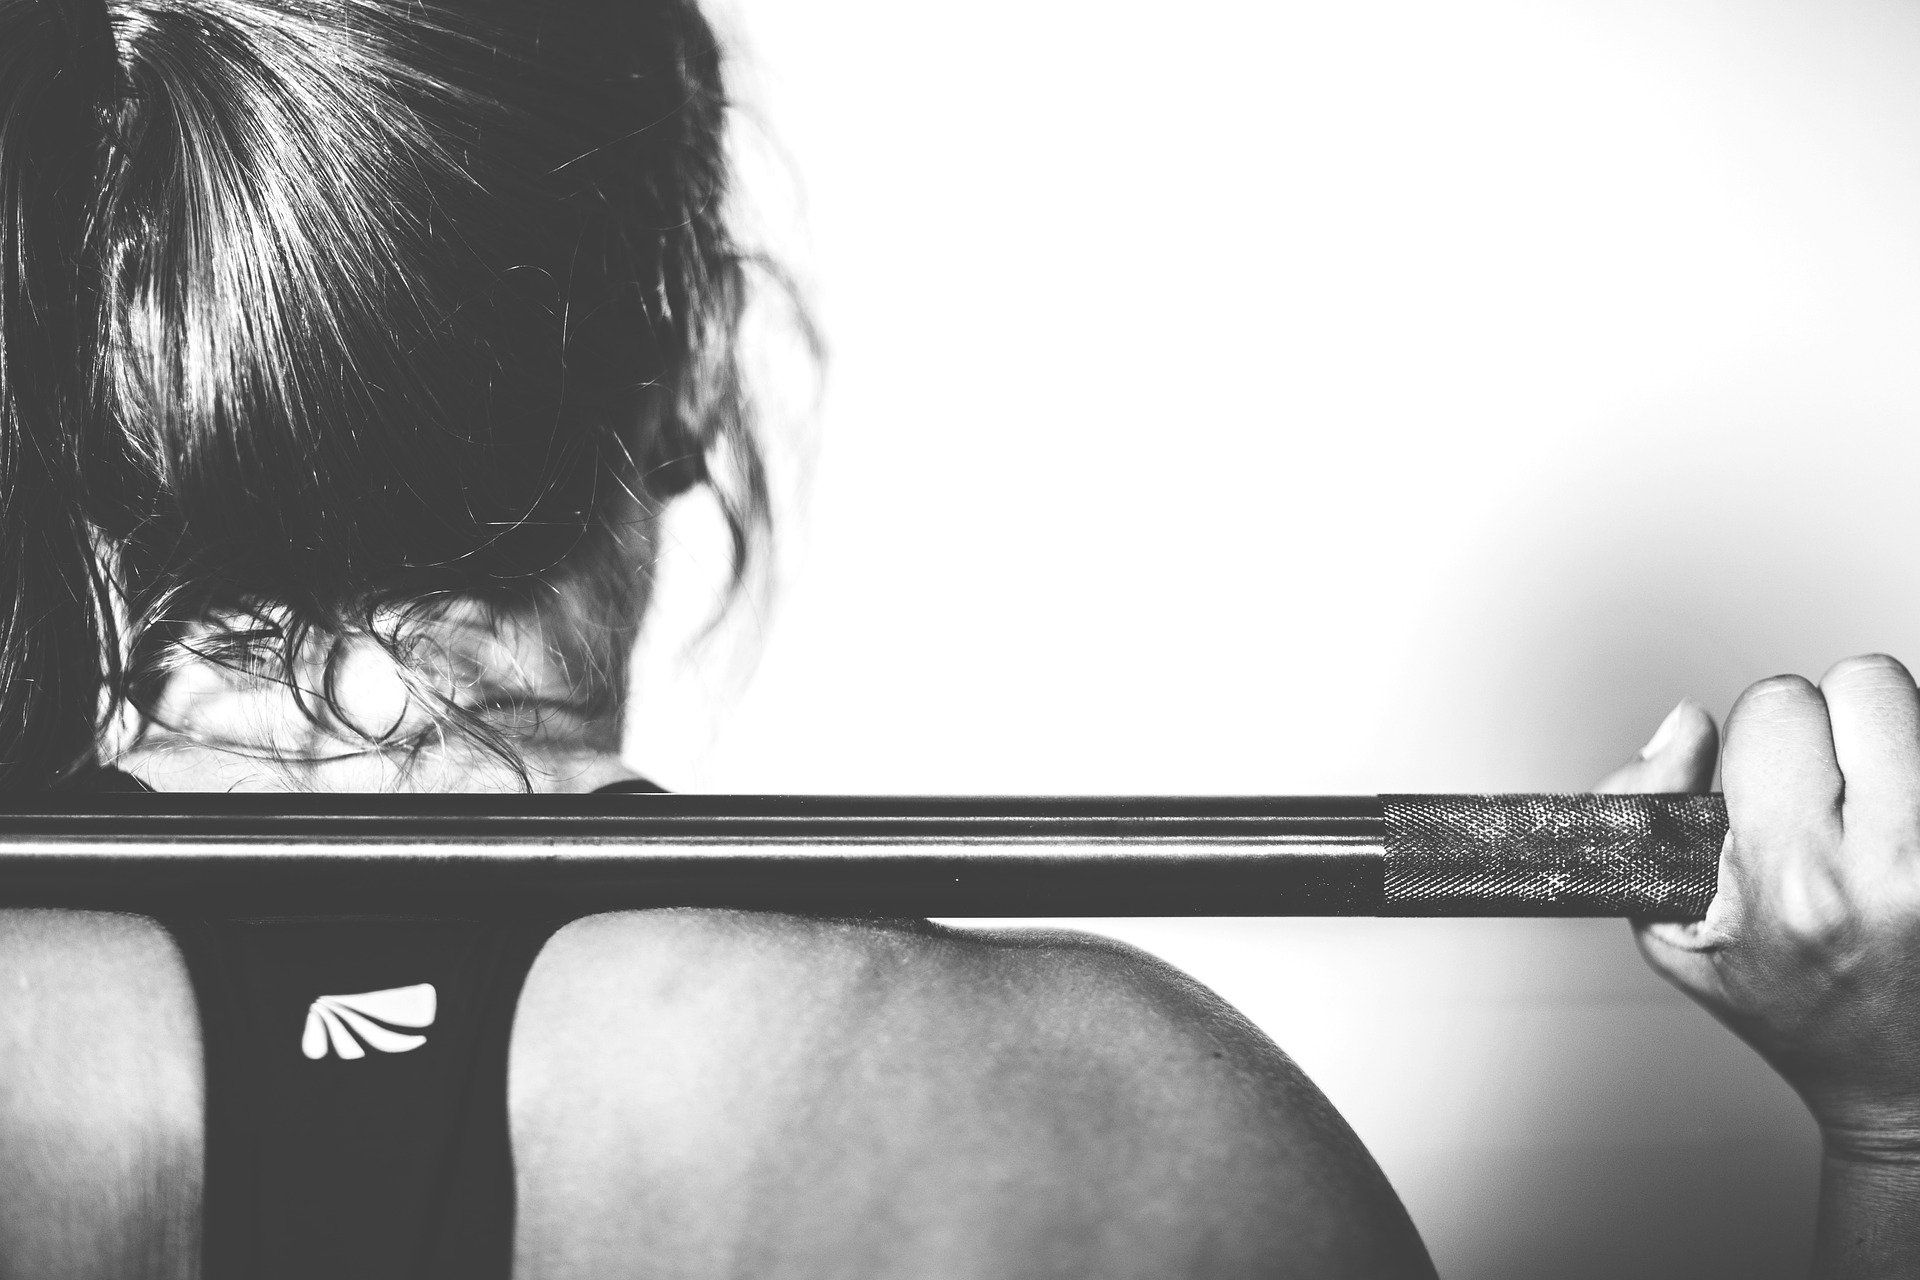 A black-and-white image of a woman working out while balancing a weight   Photo: Pixabay/Ichigo121212